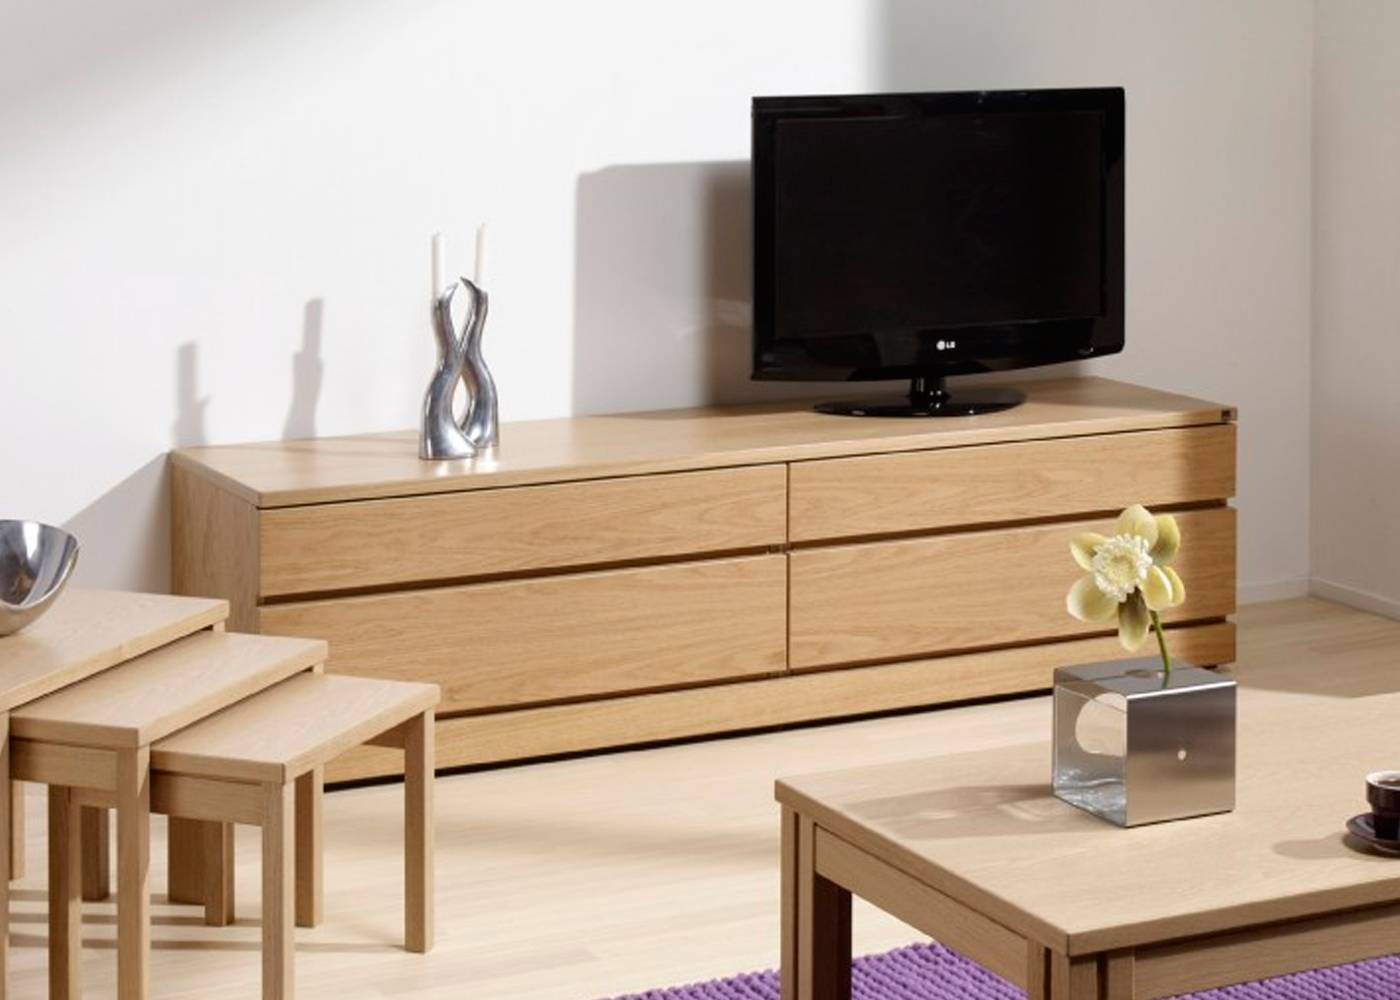 Skovby Sm87 Tv Cabinet In Light Oak Finish 1 - Midfurn Furniture intended for Light Oak Tv Cabinets (Image 11 of 15)